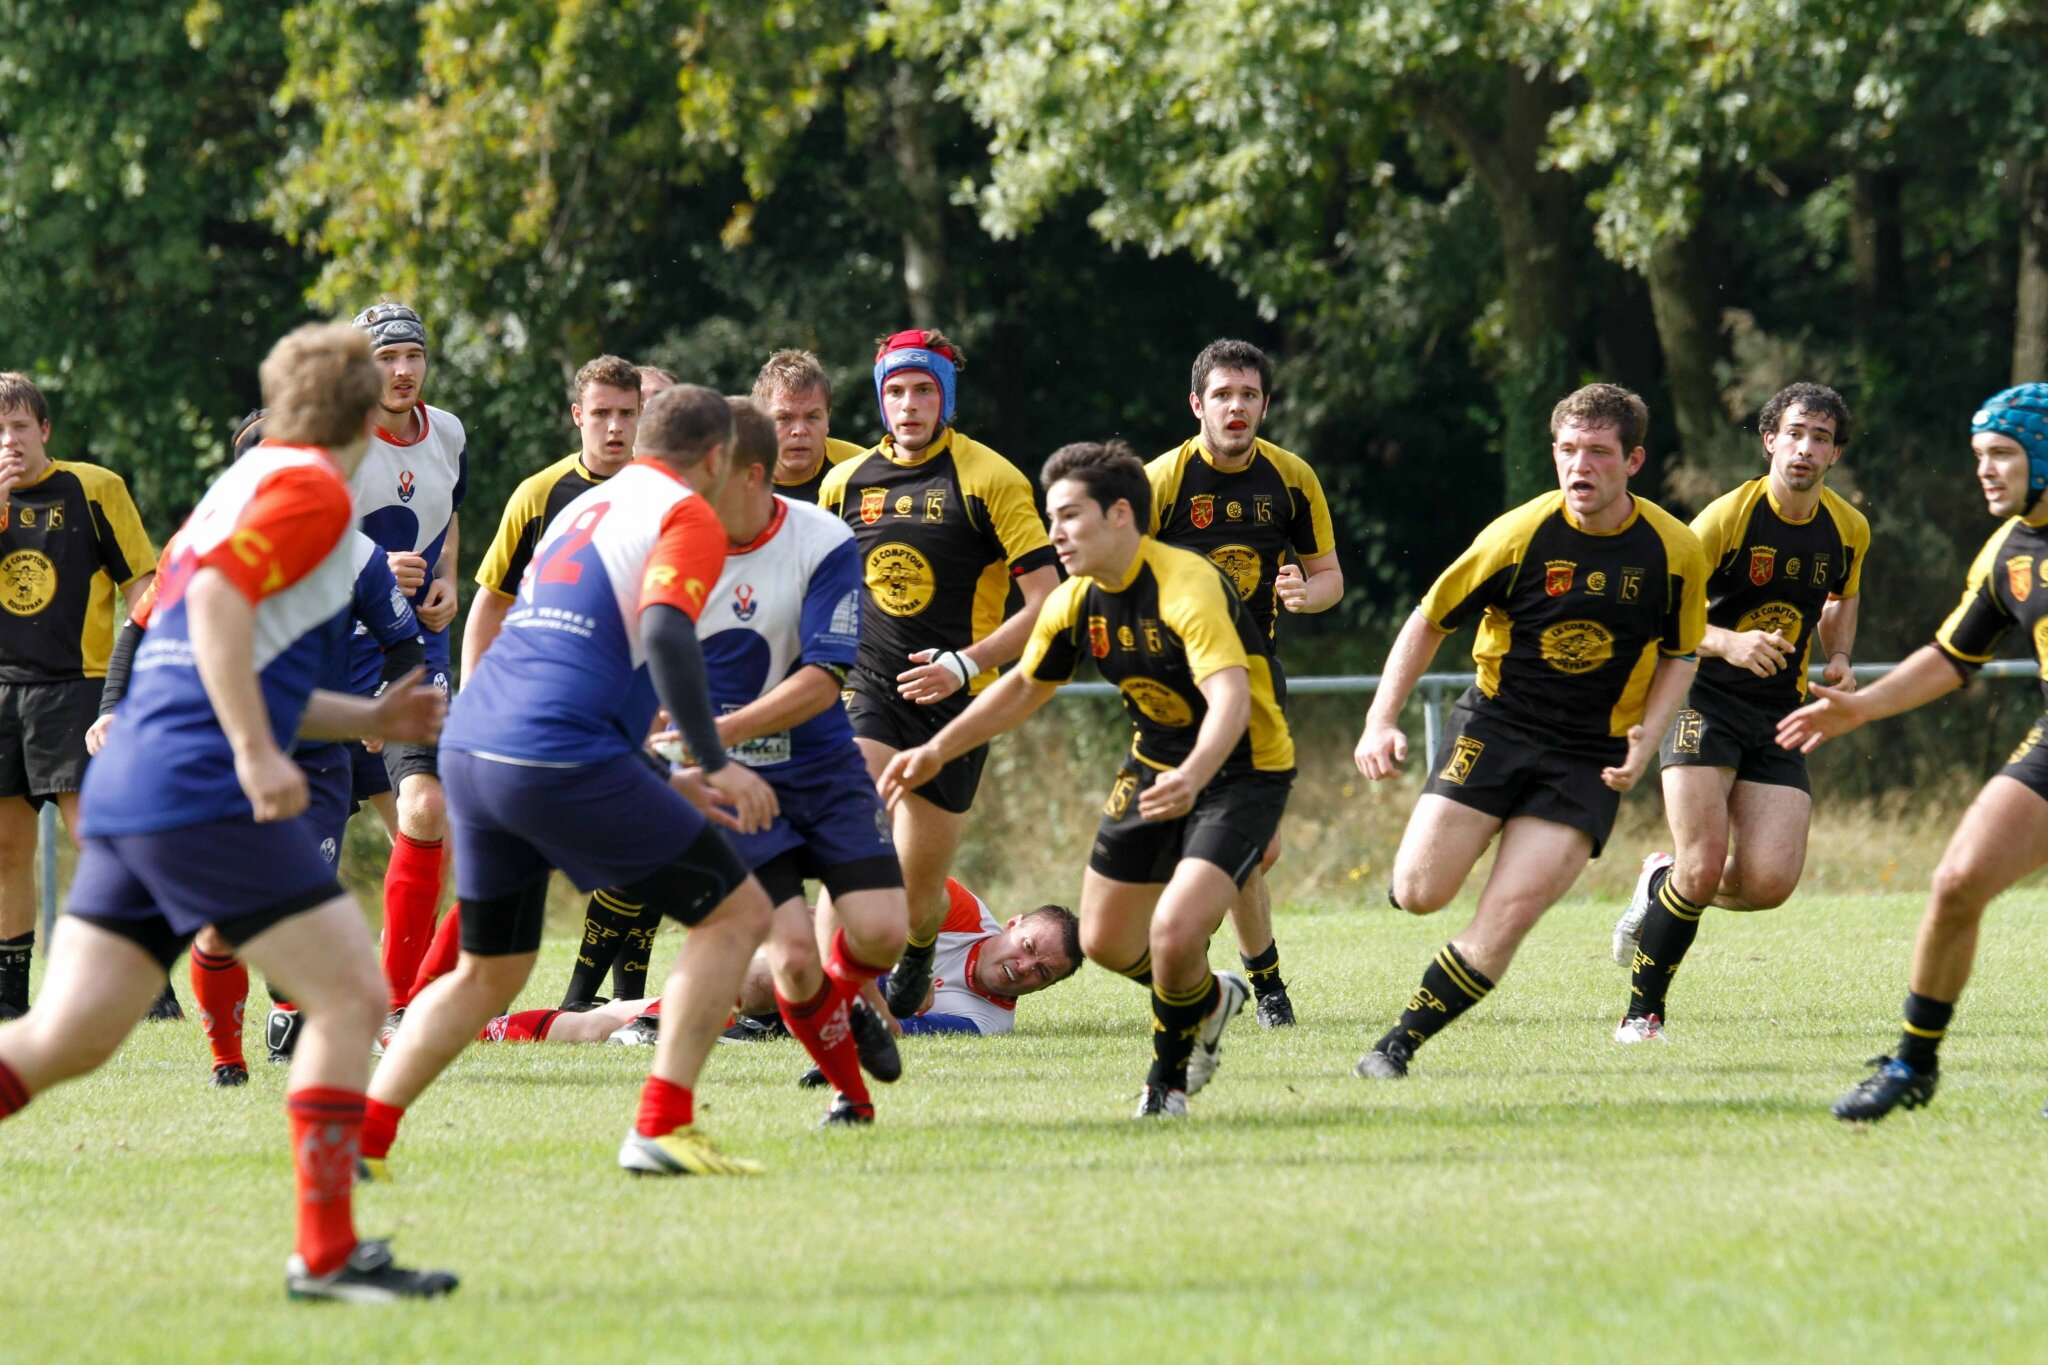 RCT-RCP15-R25